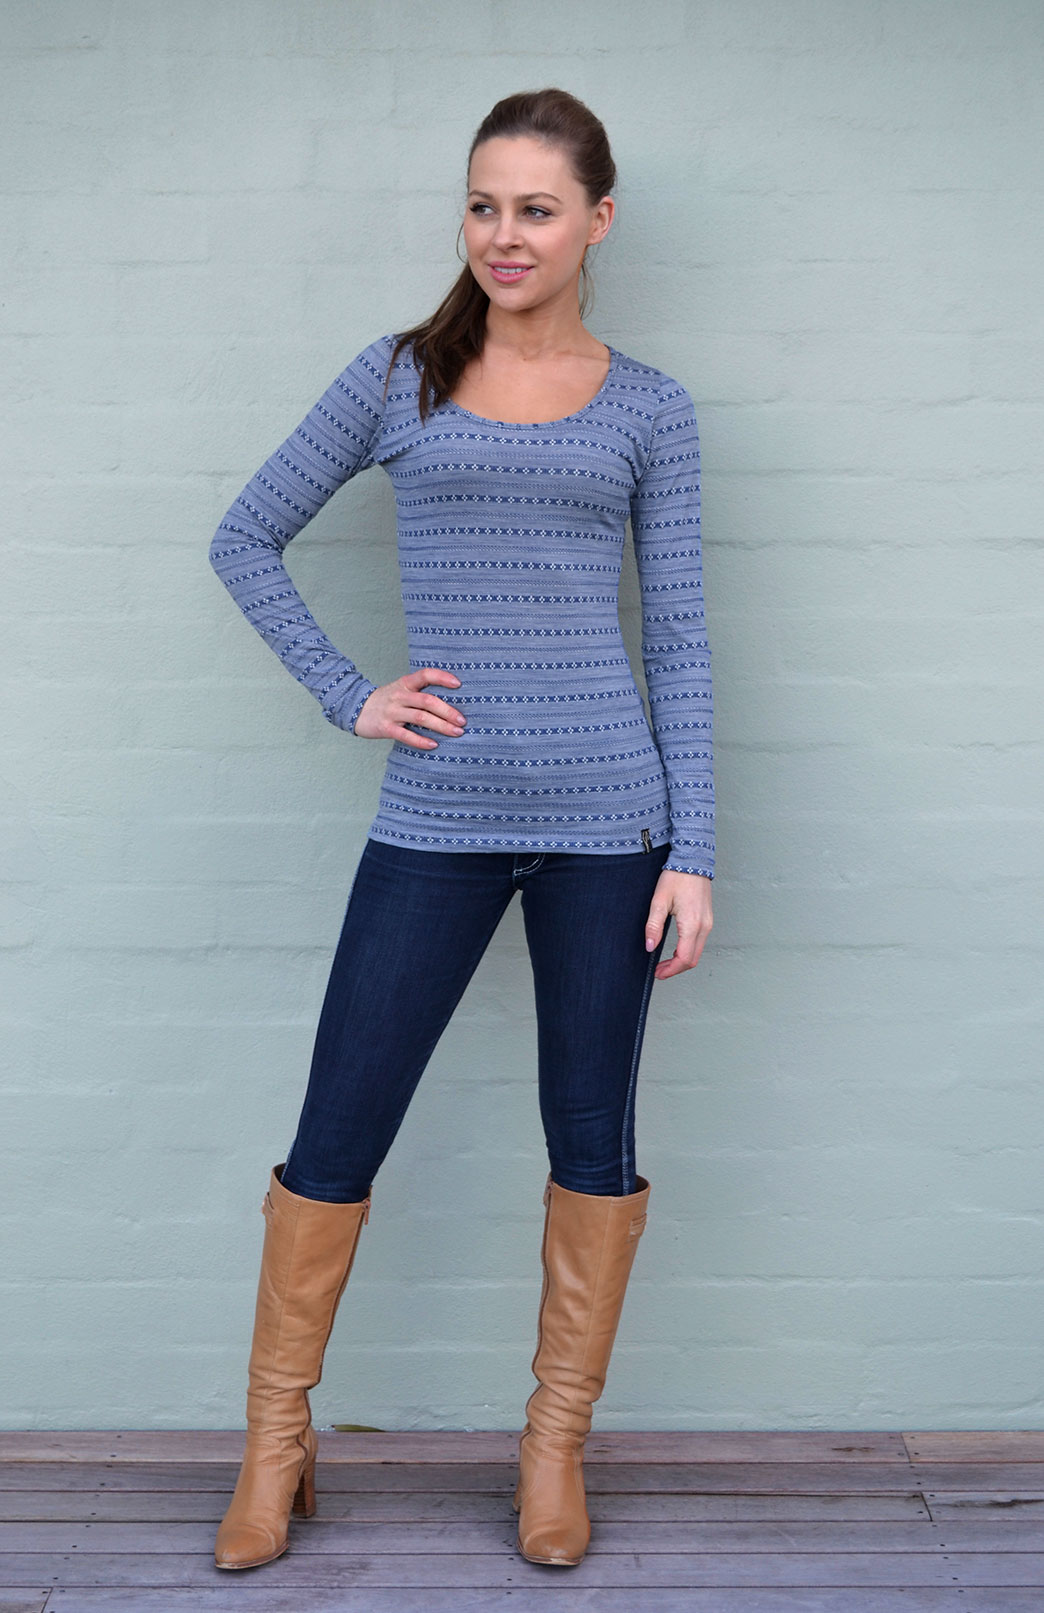 Scoop Neck Top - Patterned - Women's Blue Patterned Merino Wool Long Sleeved Thermal Top with Scoop Neckline - Smitten Merino Tasmania Australia